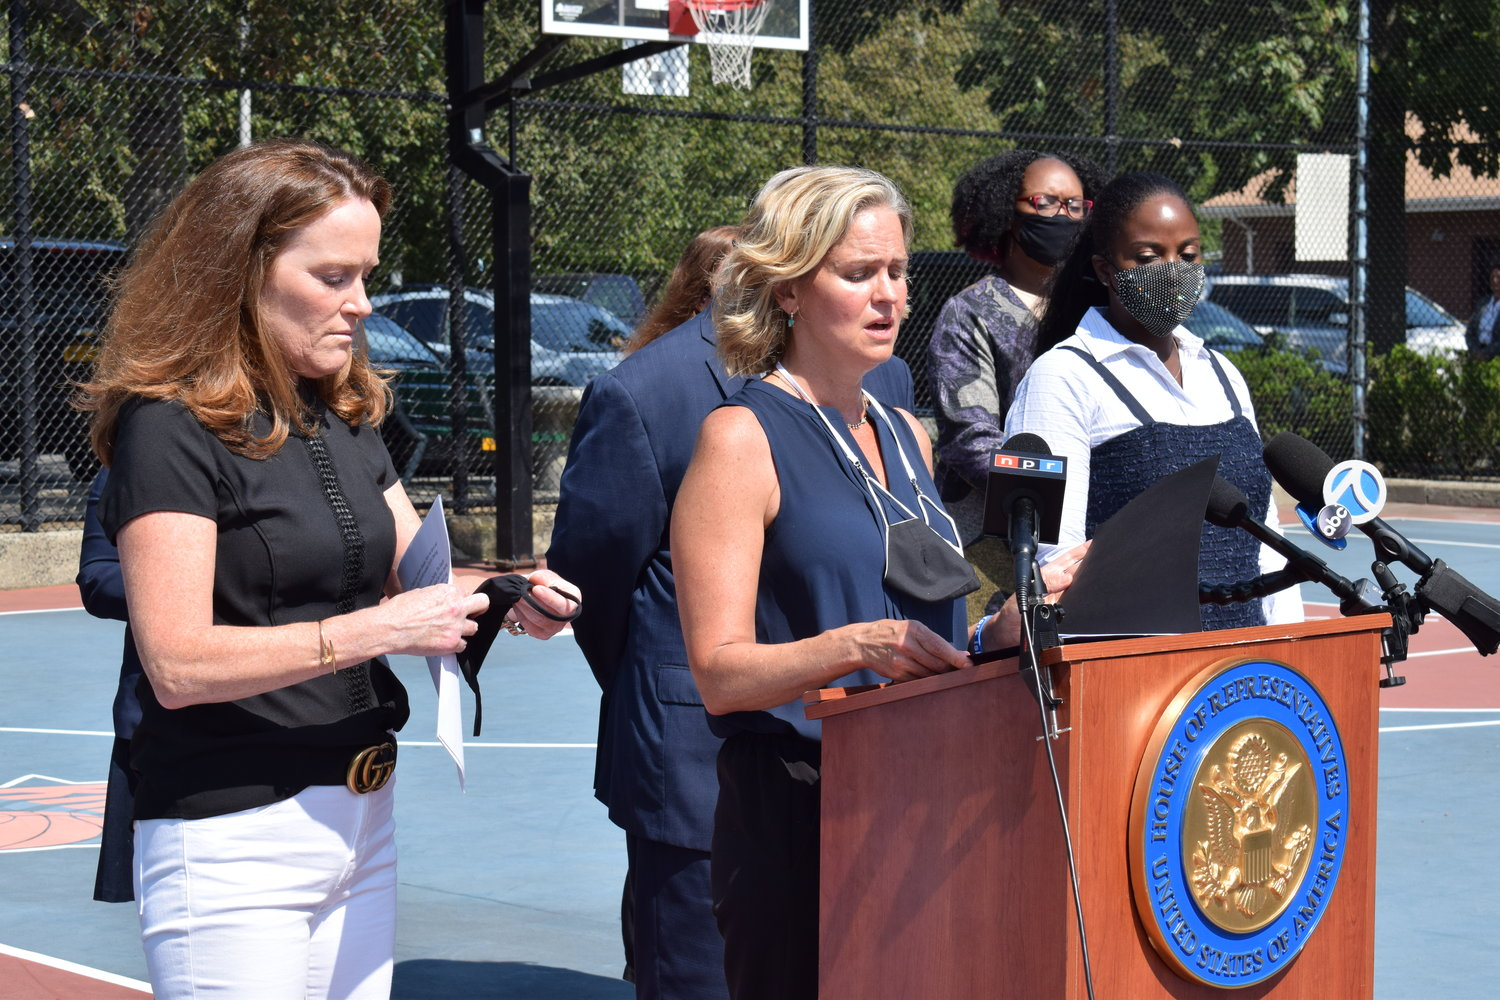 U.S. Rep. Kathleen Rice, left, joined Nassau County Executive Laura Curran, center, State Assemblywoman Taylor Darling and others to urge everyone to complete the 2020 census by Sept. 30.